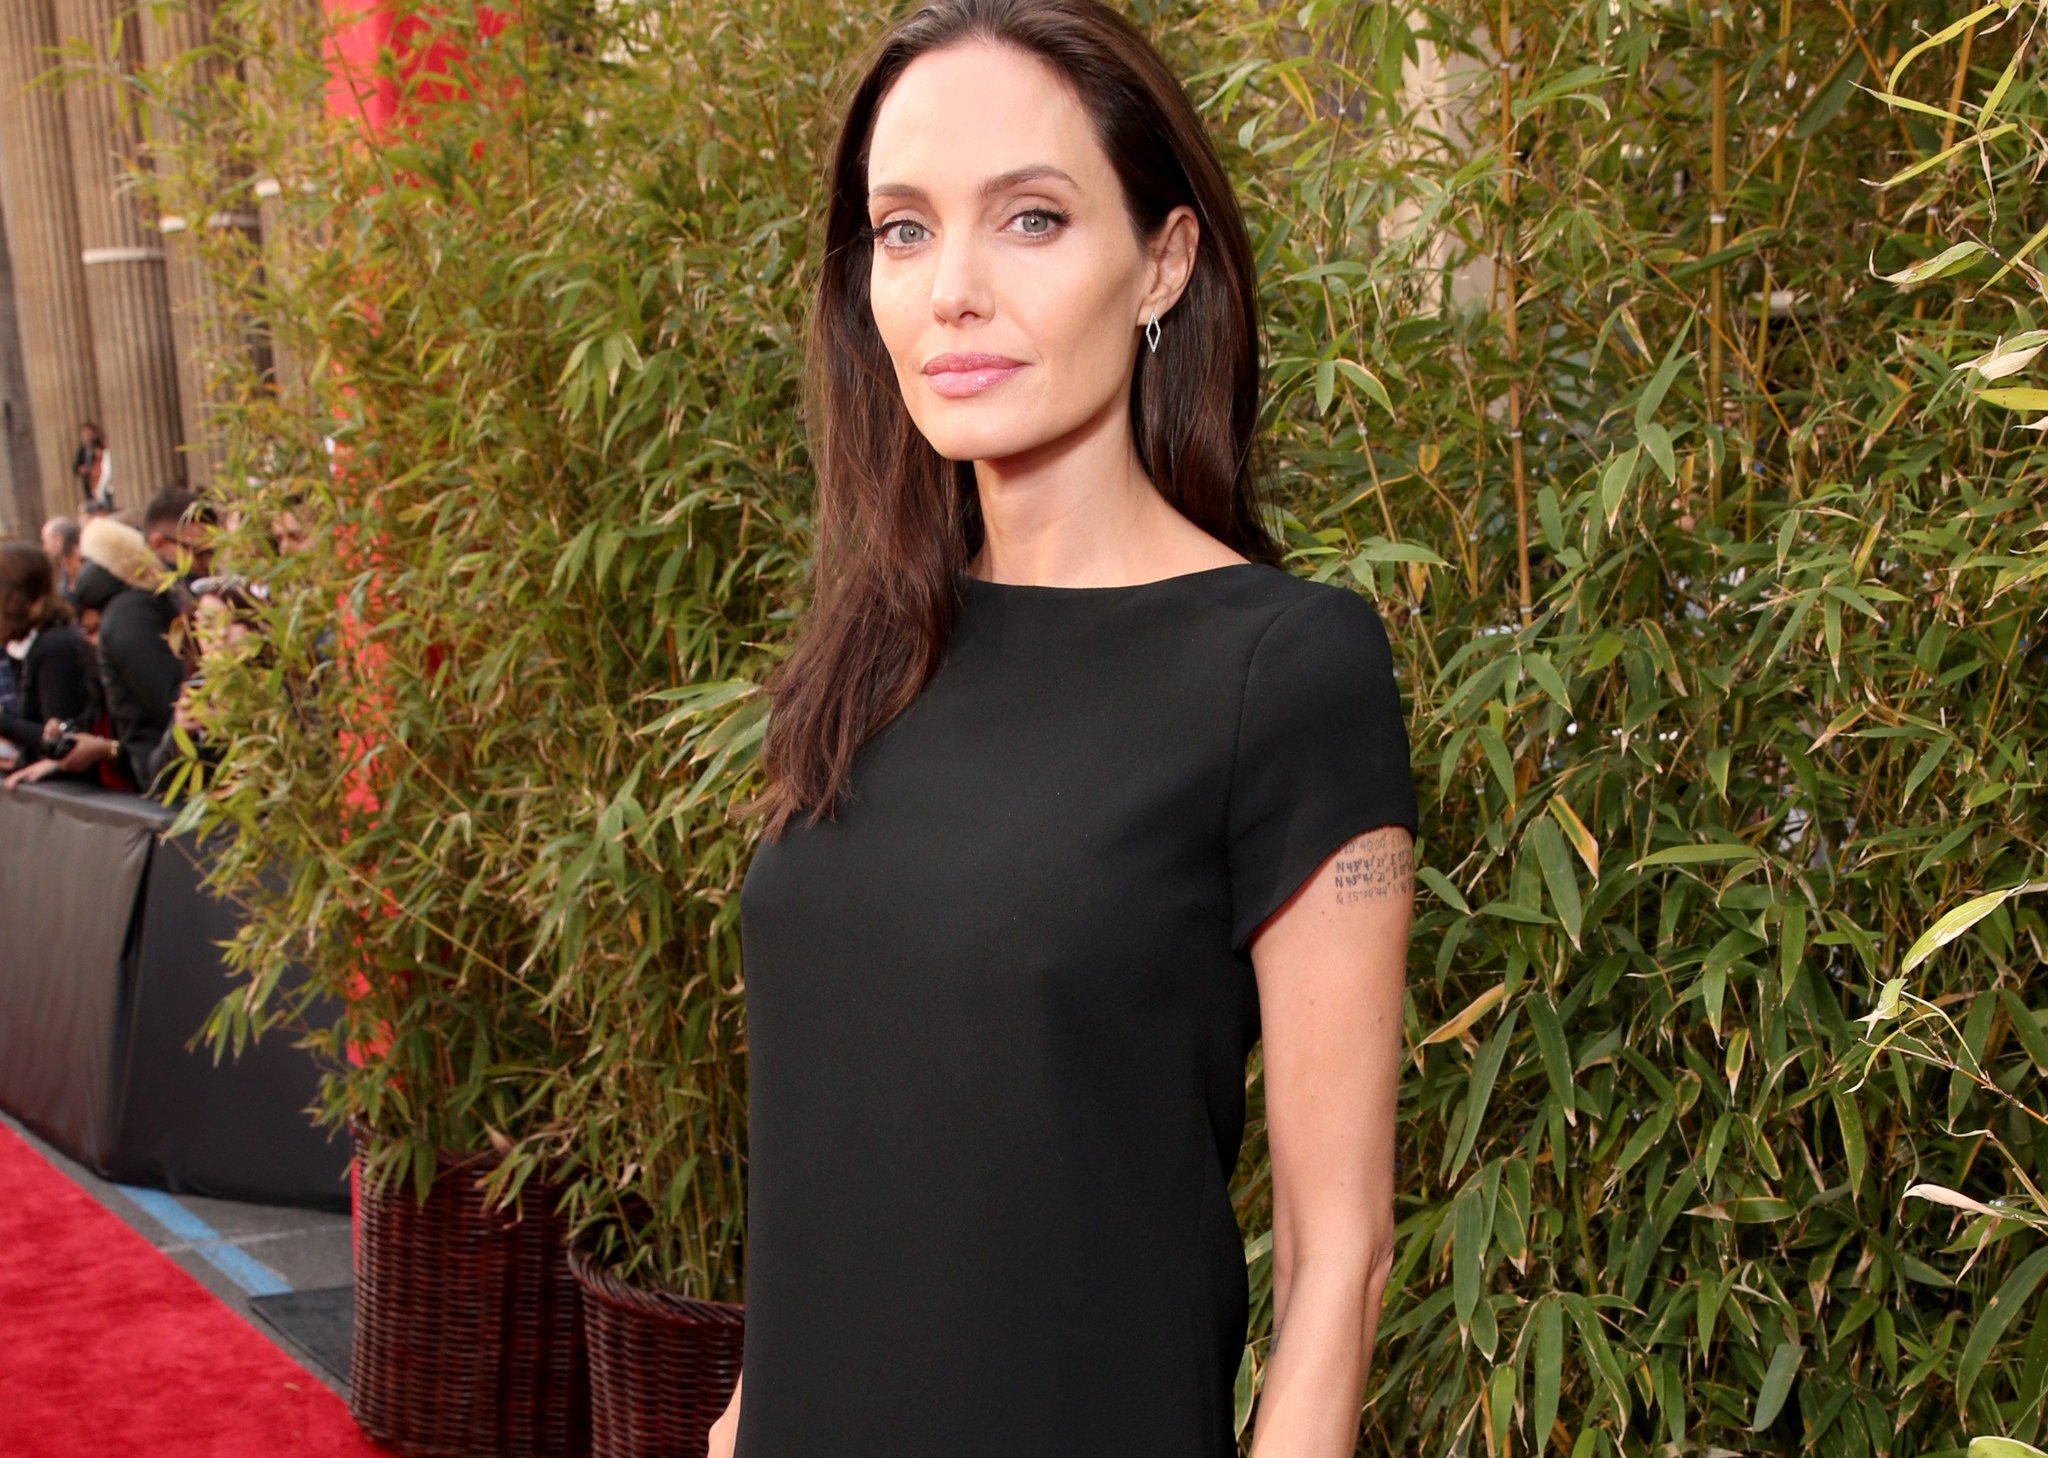 Angelina Jolie reveals she was diagnosed with Bell's palsy: https://t.co/BP5gZMl8hG https://t.co/eTF0ZdHbPI